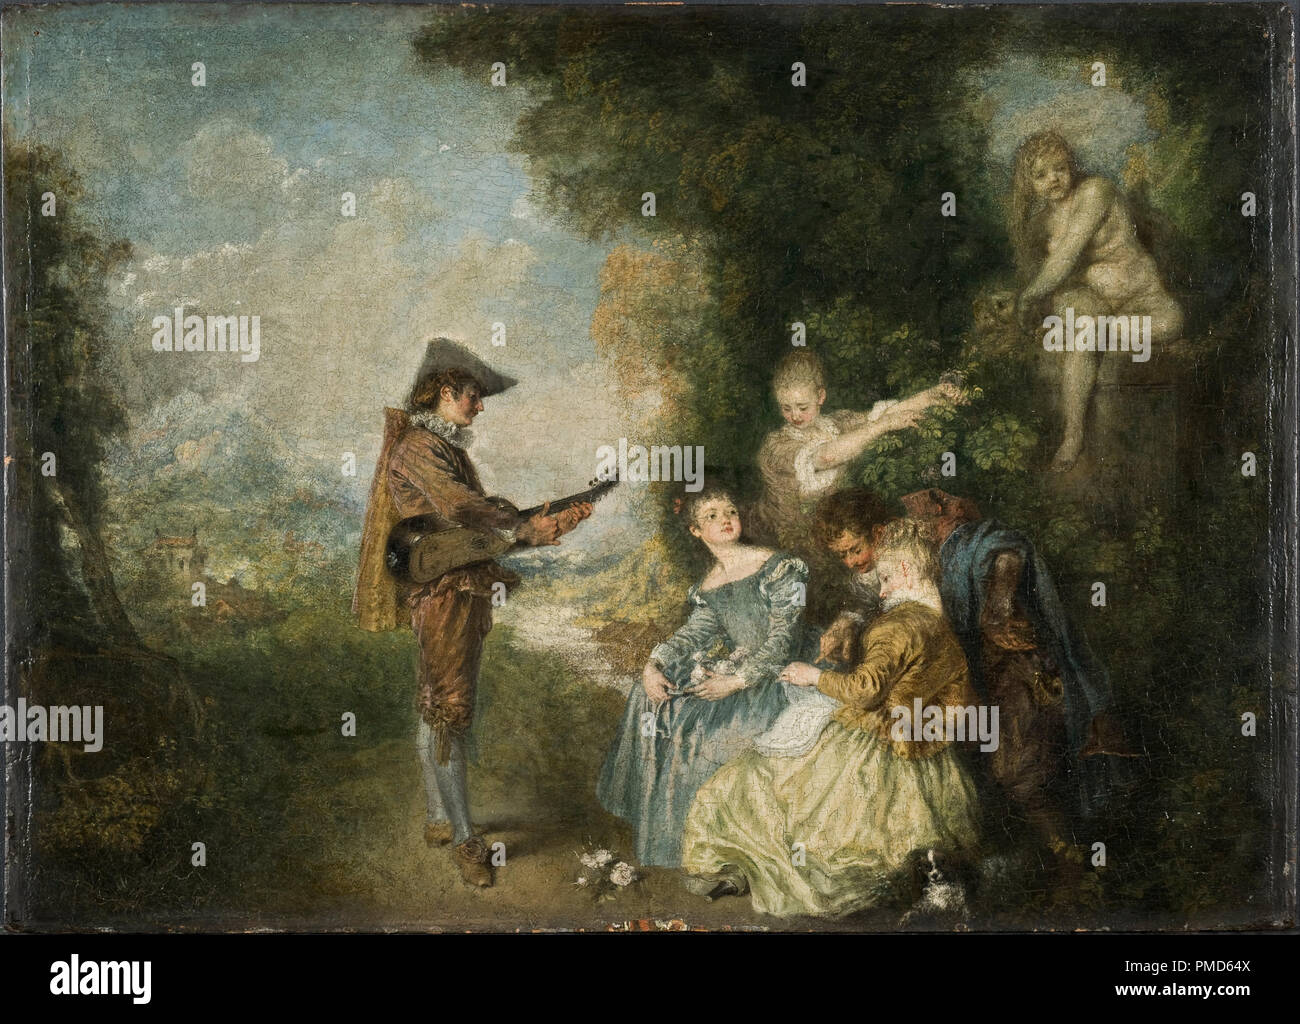 Date/Period: 1716 - 1717. Painting. Oil on panel. Height: 440 mm (17.32  in); Width: 610 mm (24.01 in). Author: ANTOINE WATTEAU. WATTEAU, ANTOINE.